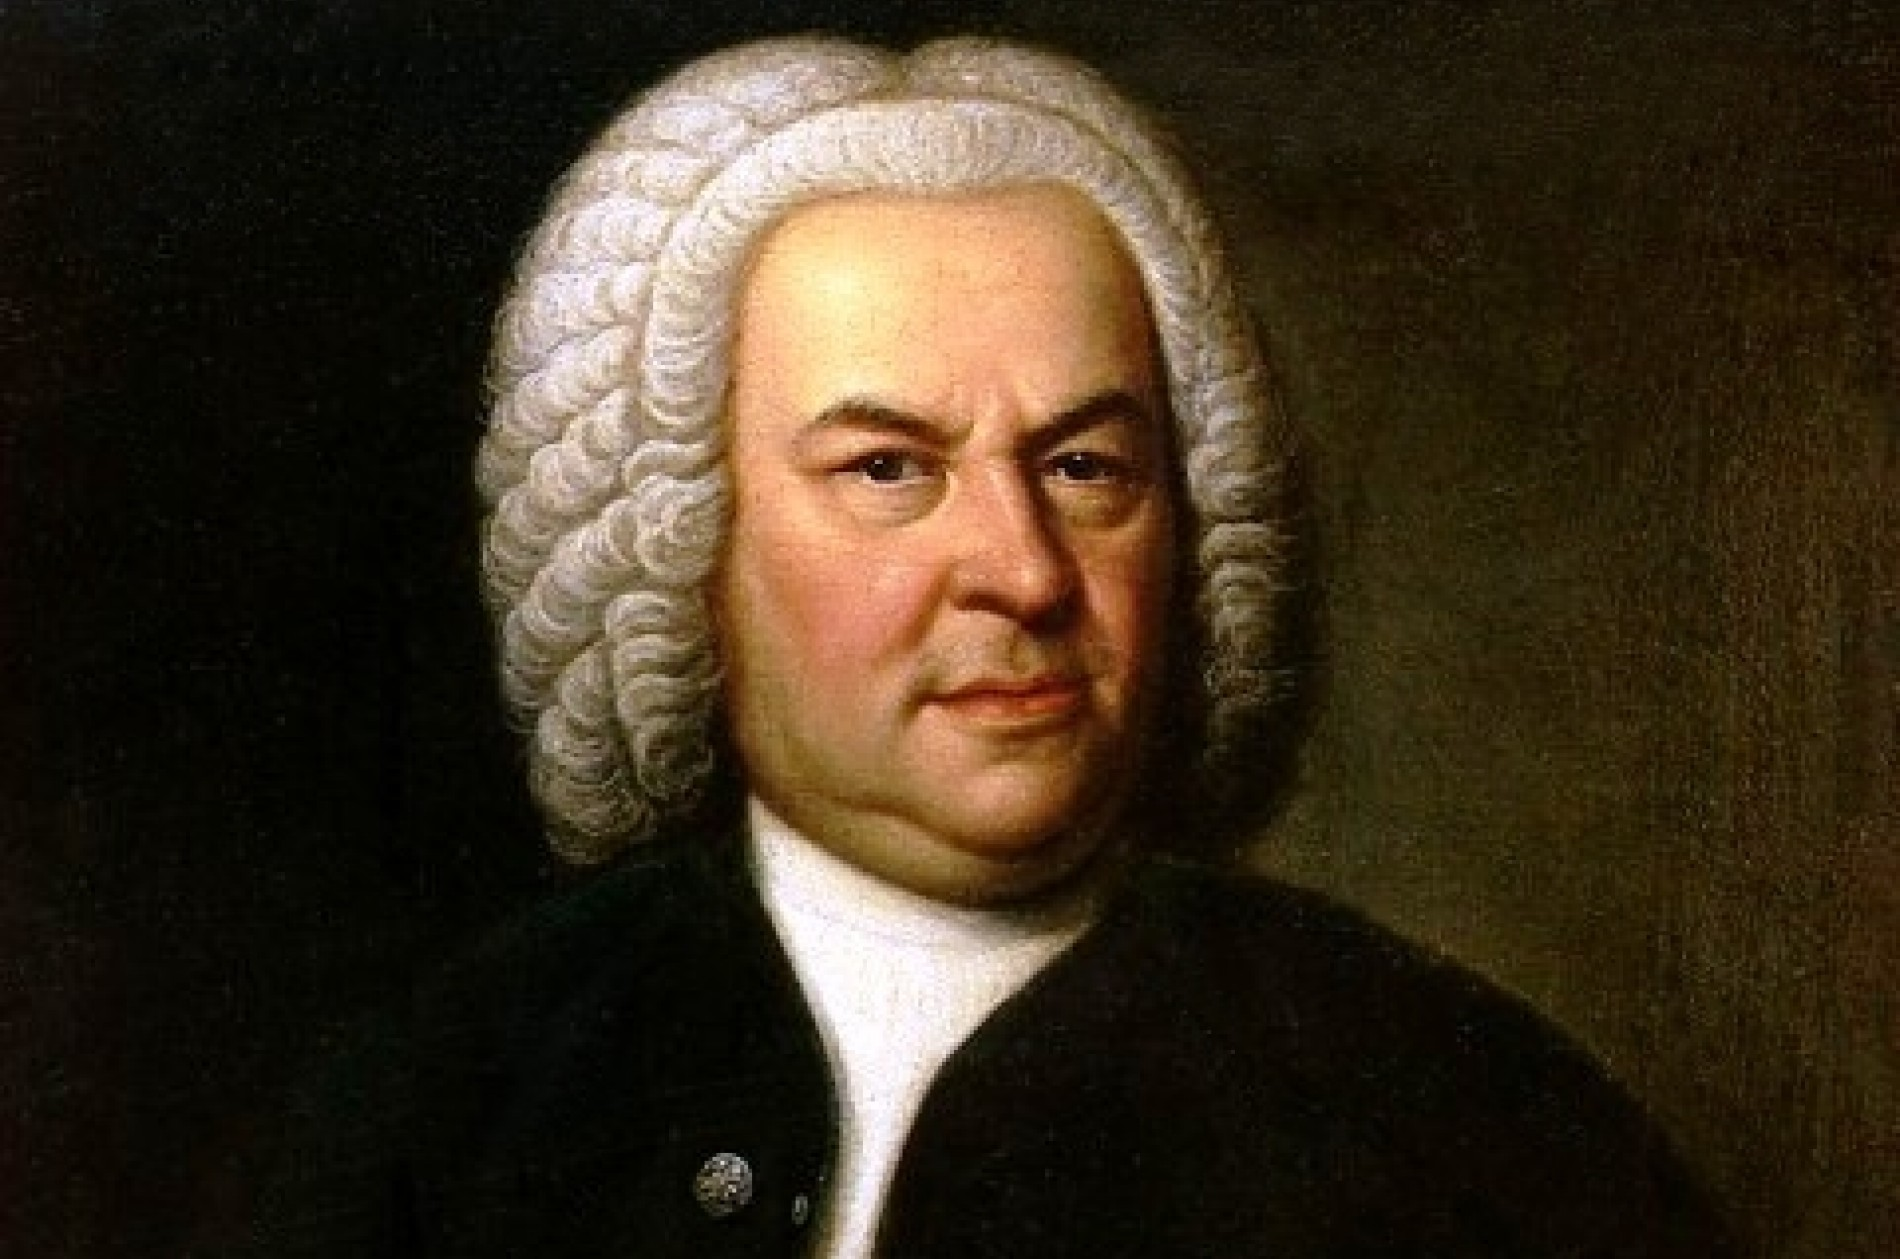 Johann Sebastian Bach (aged 61) in a portrait by Elias Gottlob Haussmann, second version of his 1746 canvas.